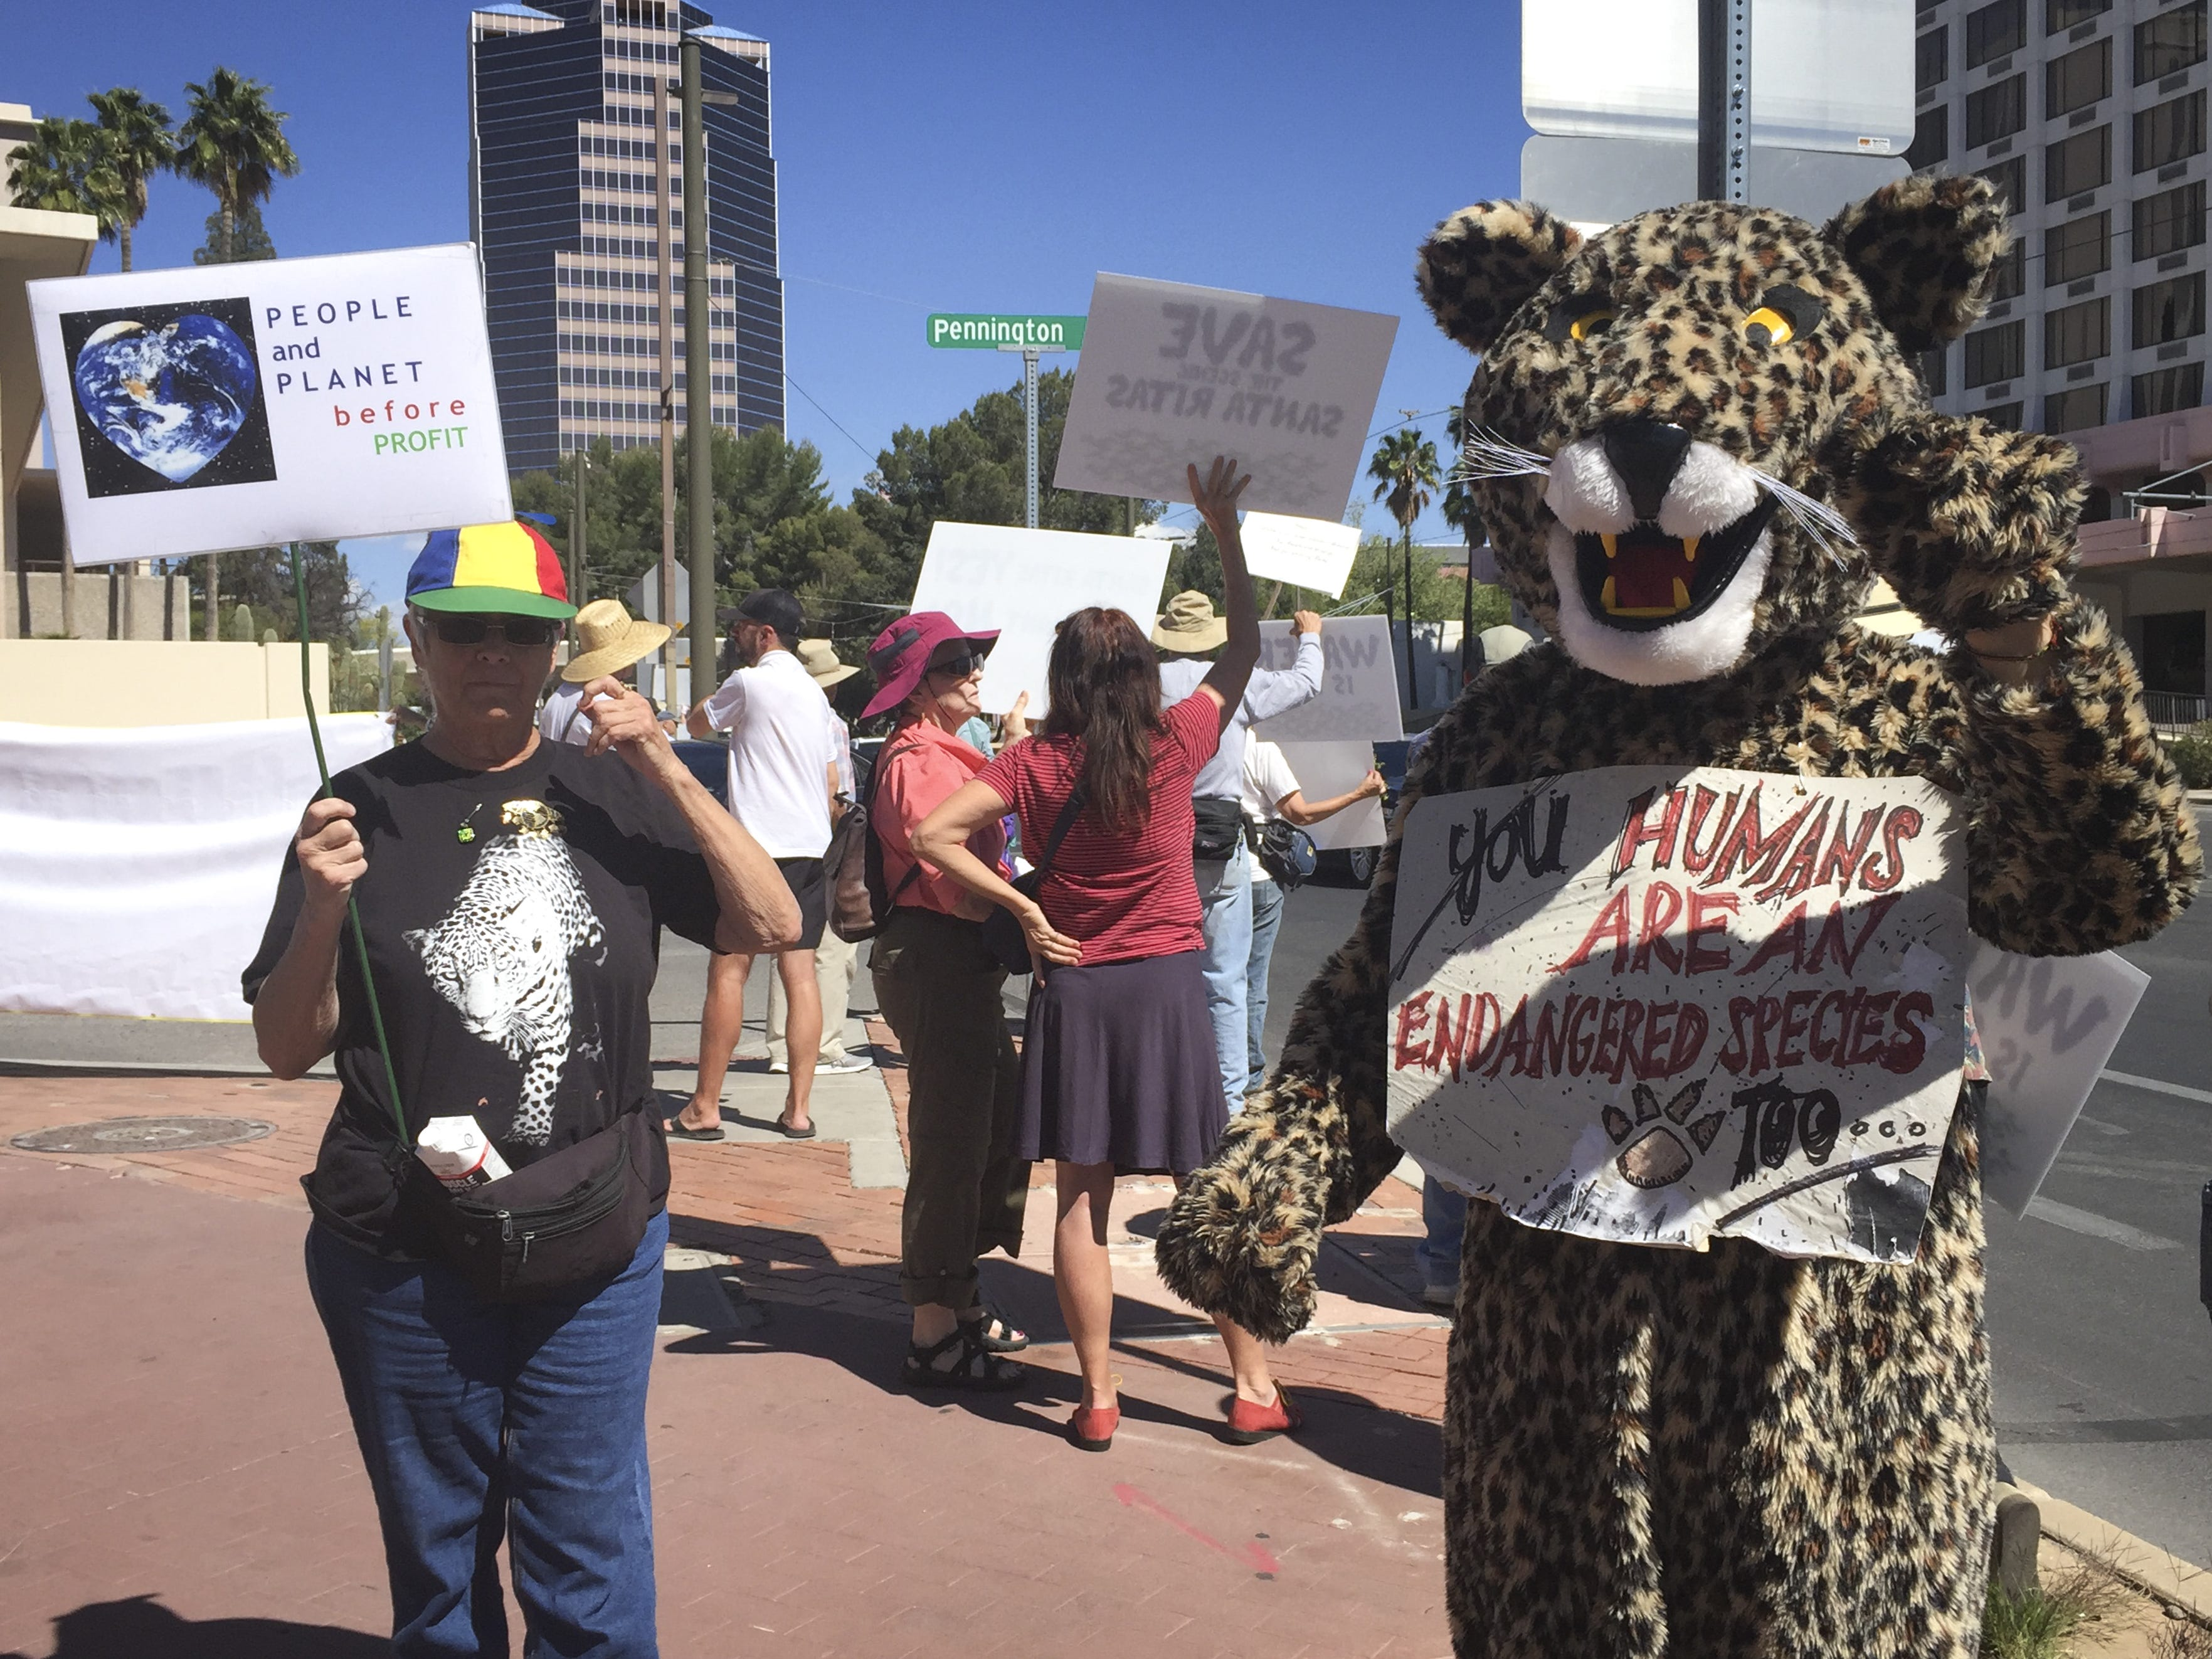 Patagonia resident Carolyn Shafer (left) joins Robert Gay, dressed in a jaguar costume, at a rally outside the Tucson Federal Building on April 13, 2019. Members from Patagonia Area Resource Alliance oppose the planned Rosemont Mine, saying it would threaten local groundwater and habitat range for the endangered jaguar.